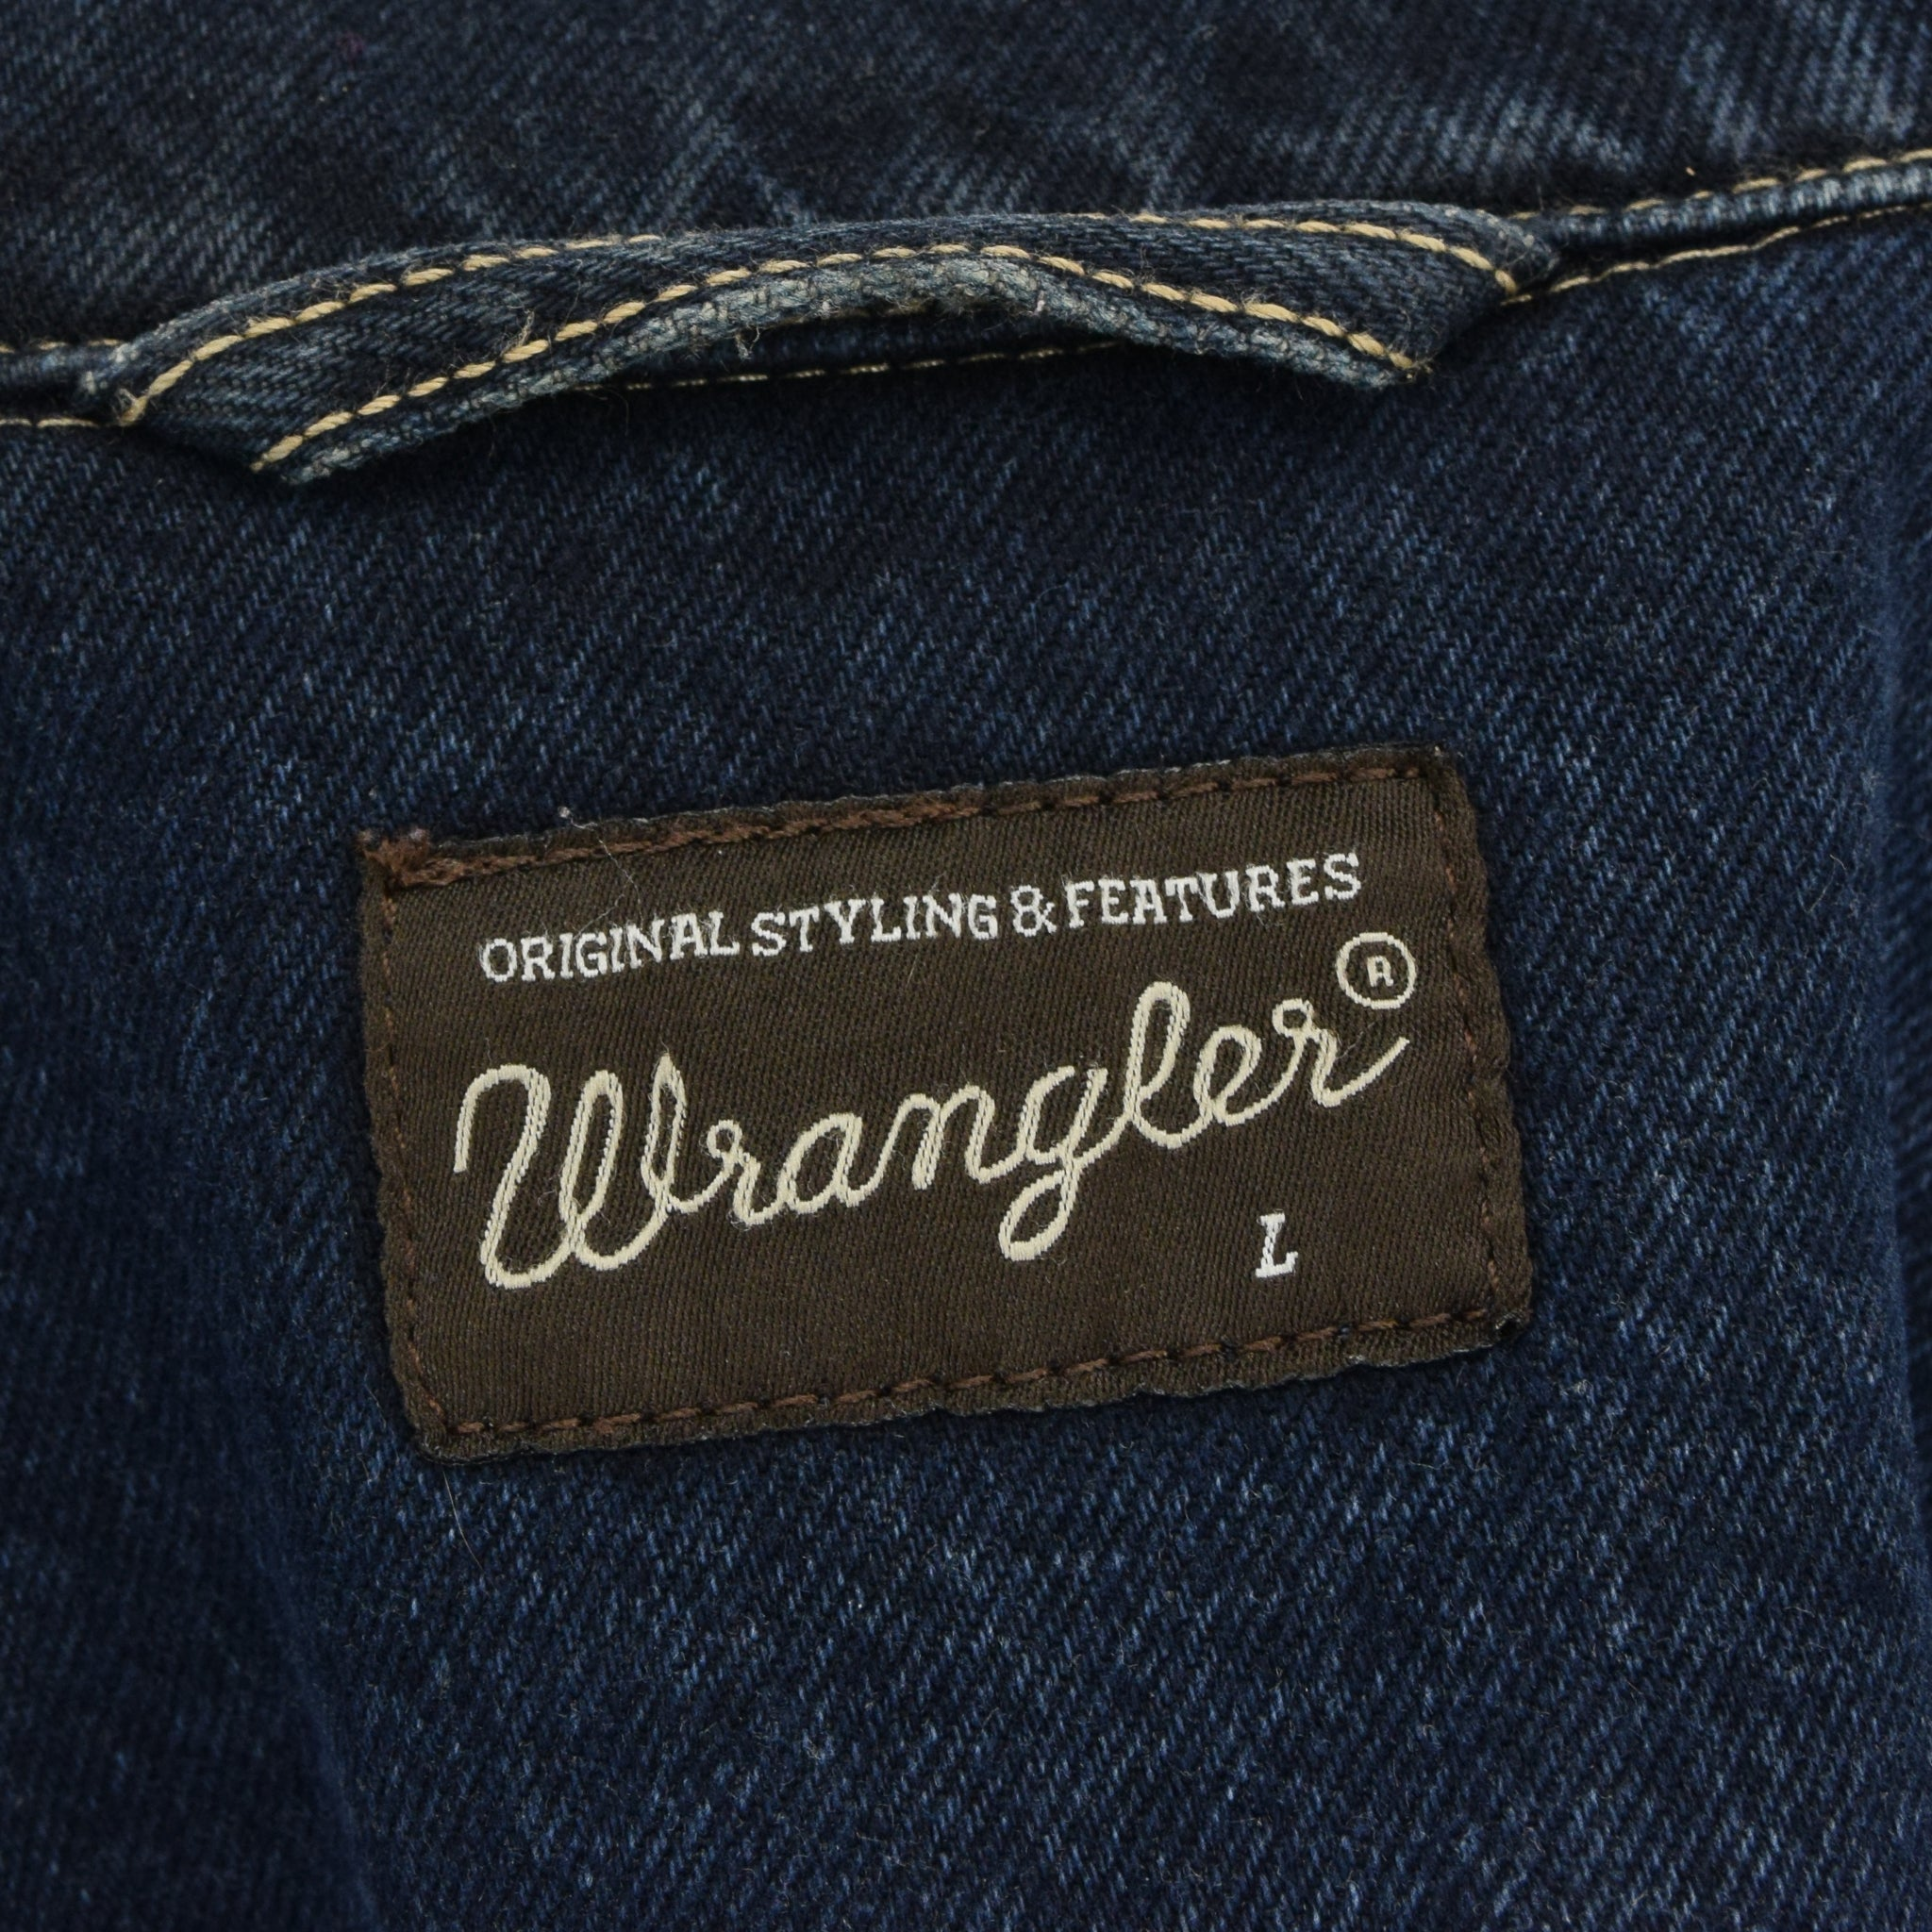 Vintage Wrangler Blue Denim Trucker Style Cotton Western Jacket M / L label